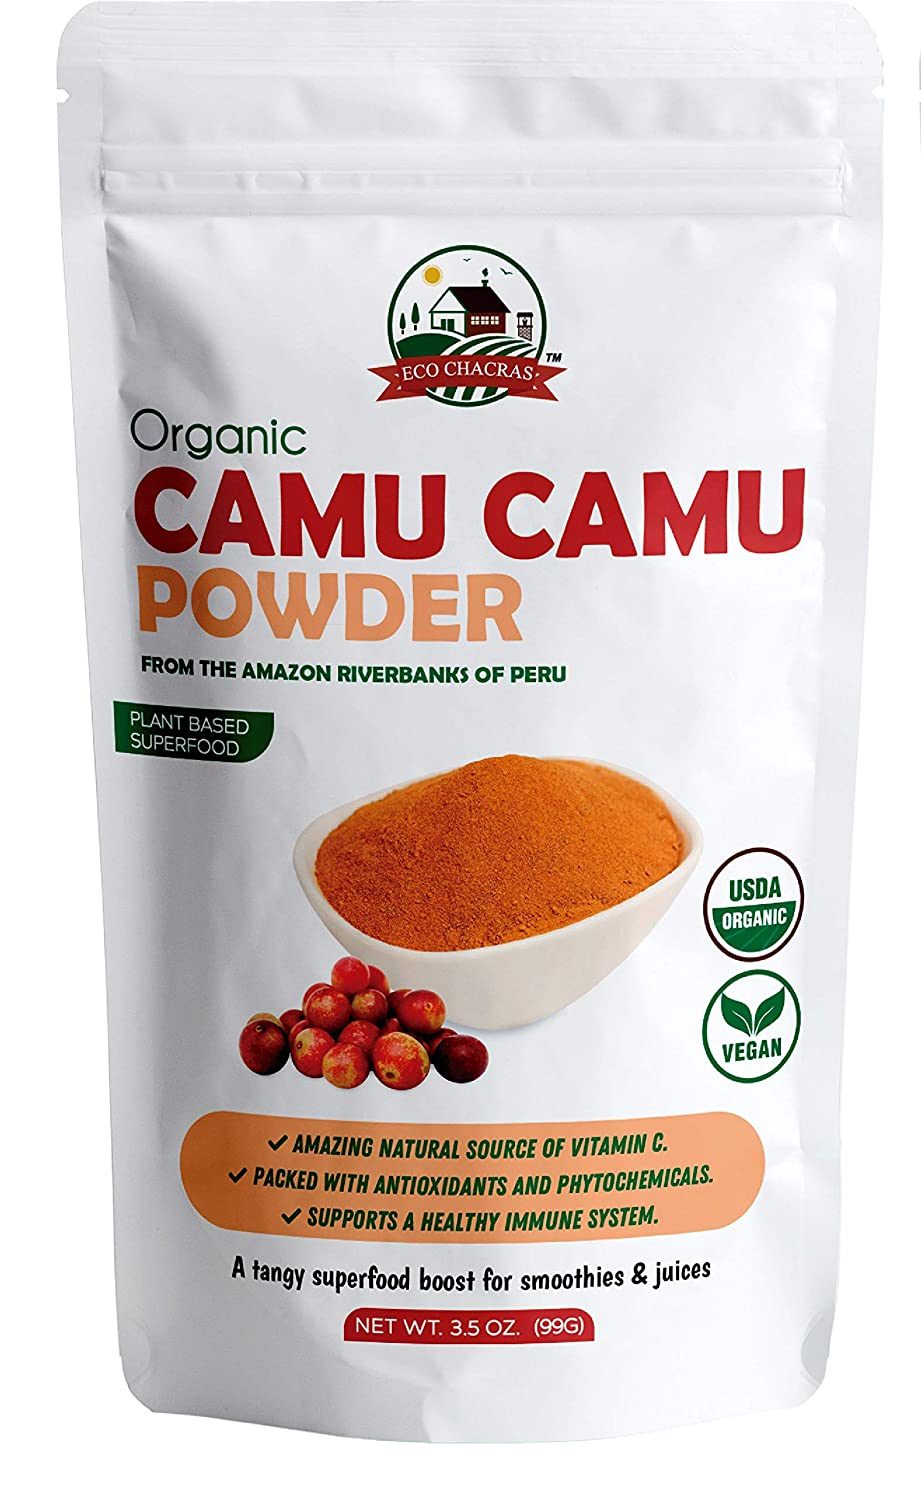 Amazon Com Camu Camu Powder Usda Certified Organic From Peru Natural Vitamin C Supplement Powder Supports Energy And Immune System 3 5 Oz Bag Grocery Gourmet Food